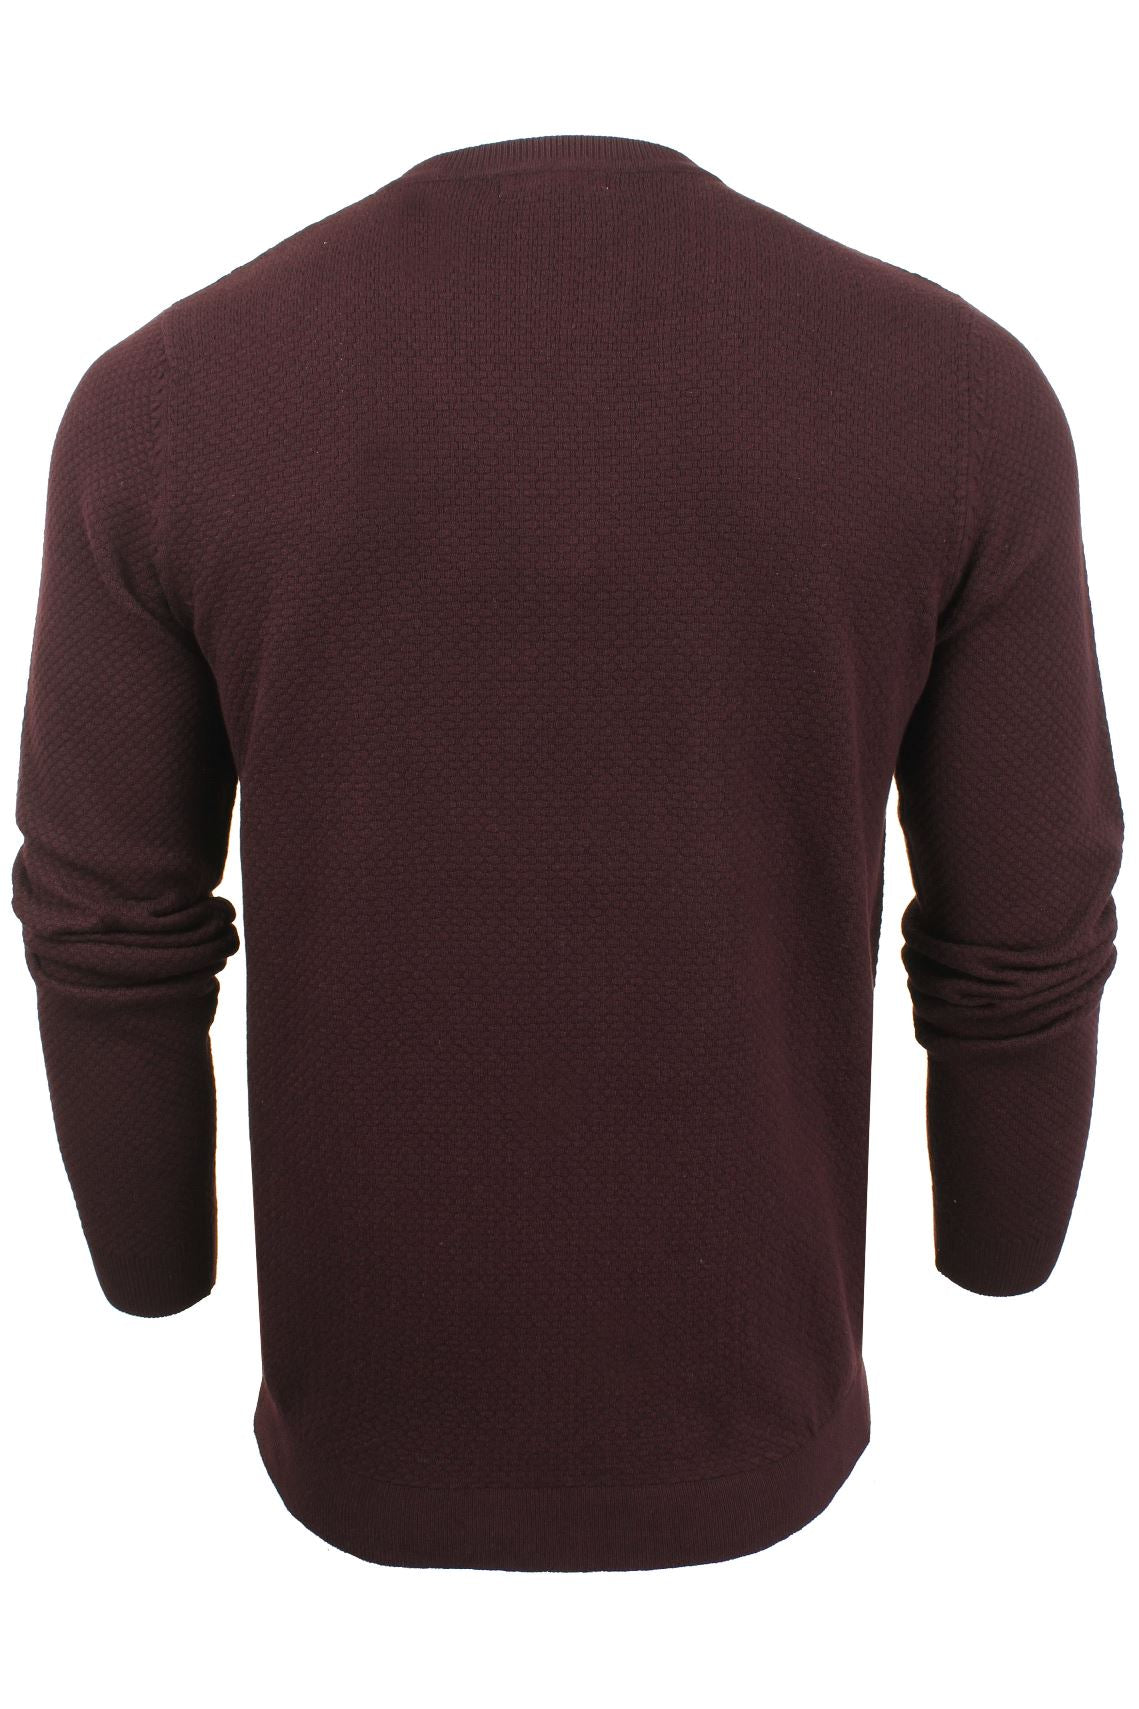 Xact Mens Crew Neck Cotton Jumper_03_XK1013_Merlot